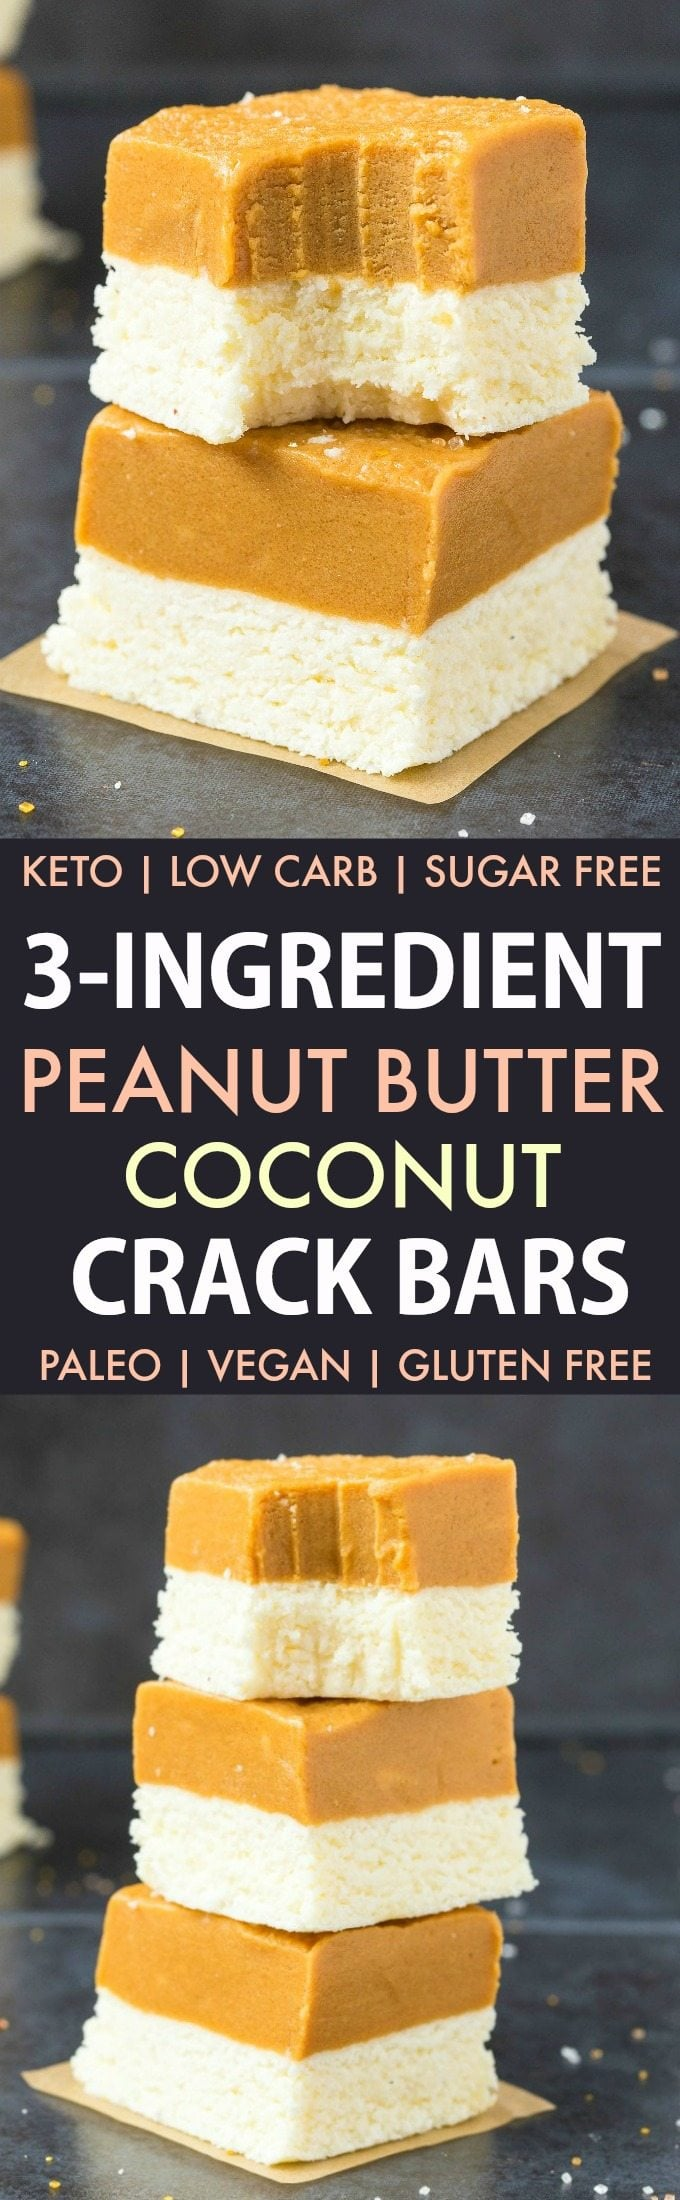 peanut butter fat bombs with coconut